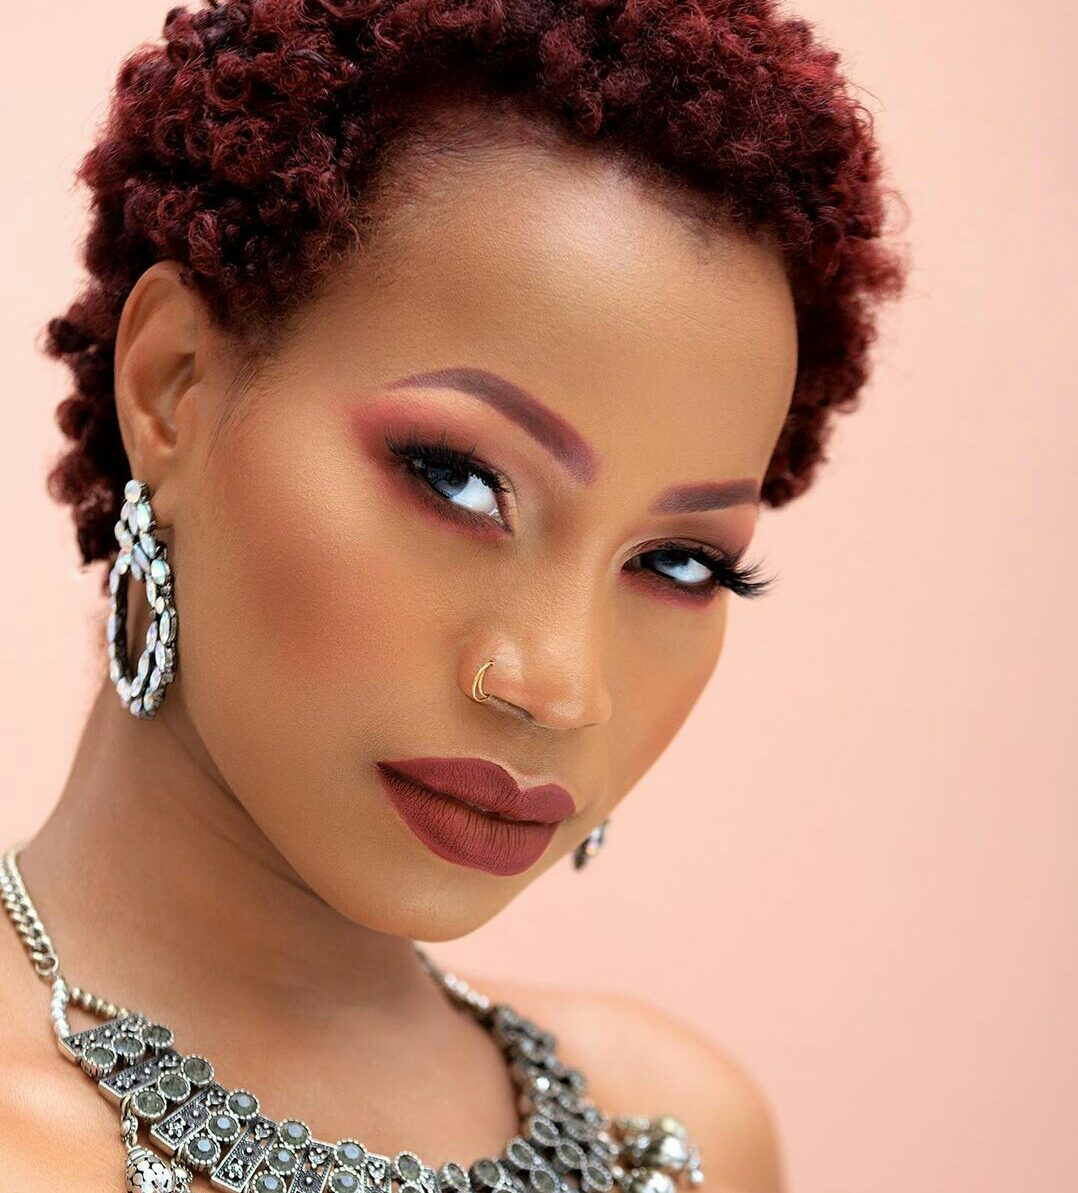 Sheebah Karungi with a trendy short perm rod hairstyle on her natural hair